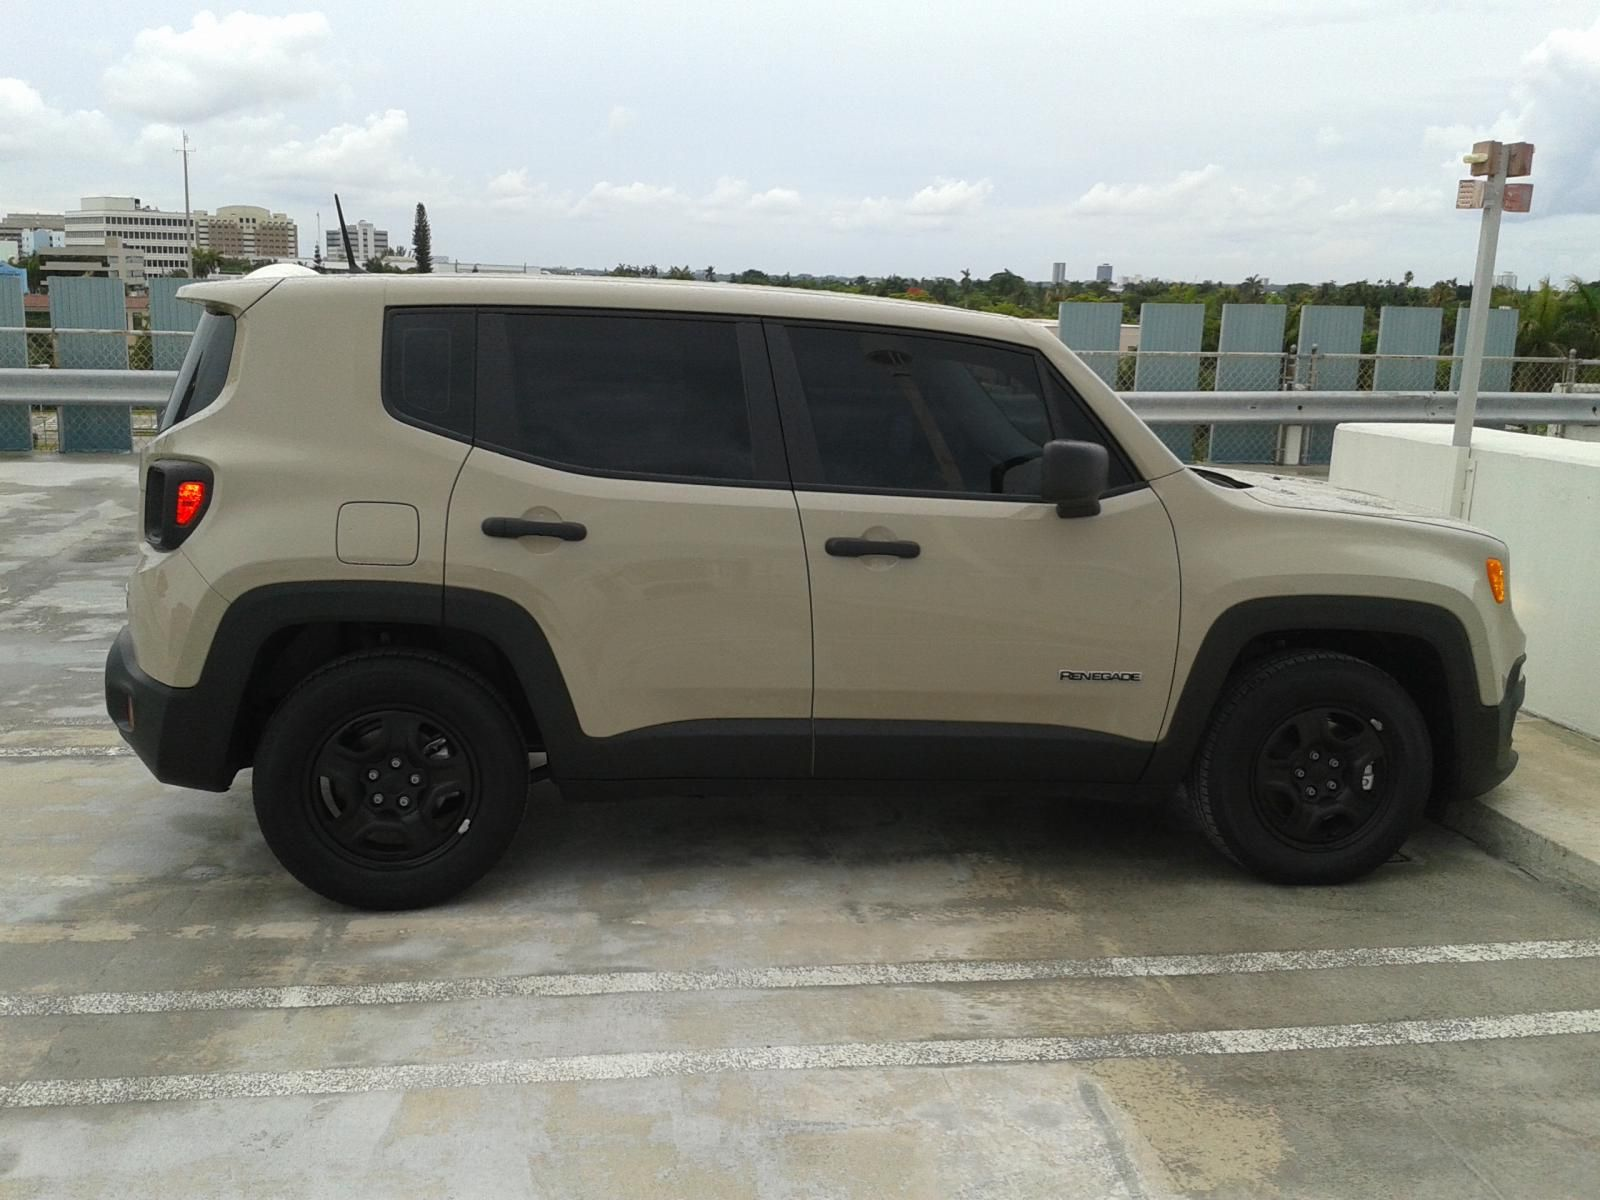 Jeep Renegade In Mojave Sand Jeep Renegade Trailhawk Jeep